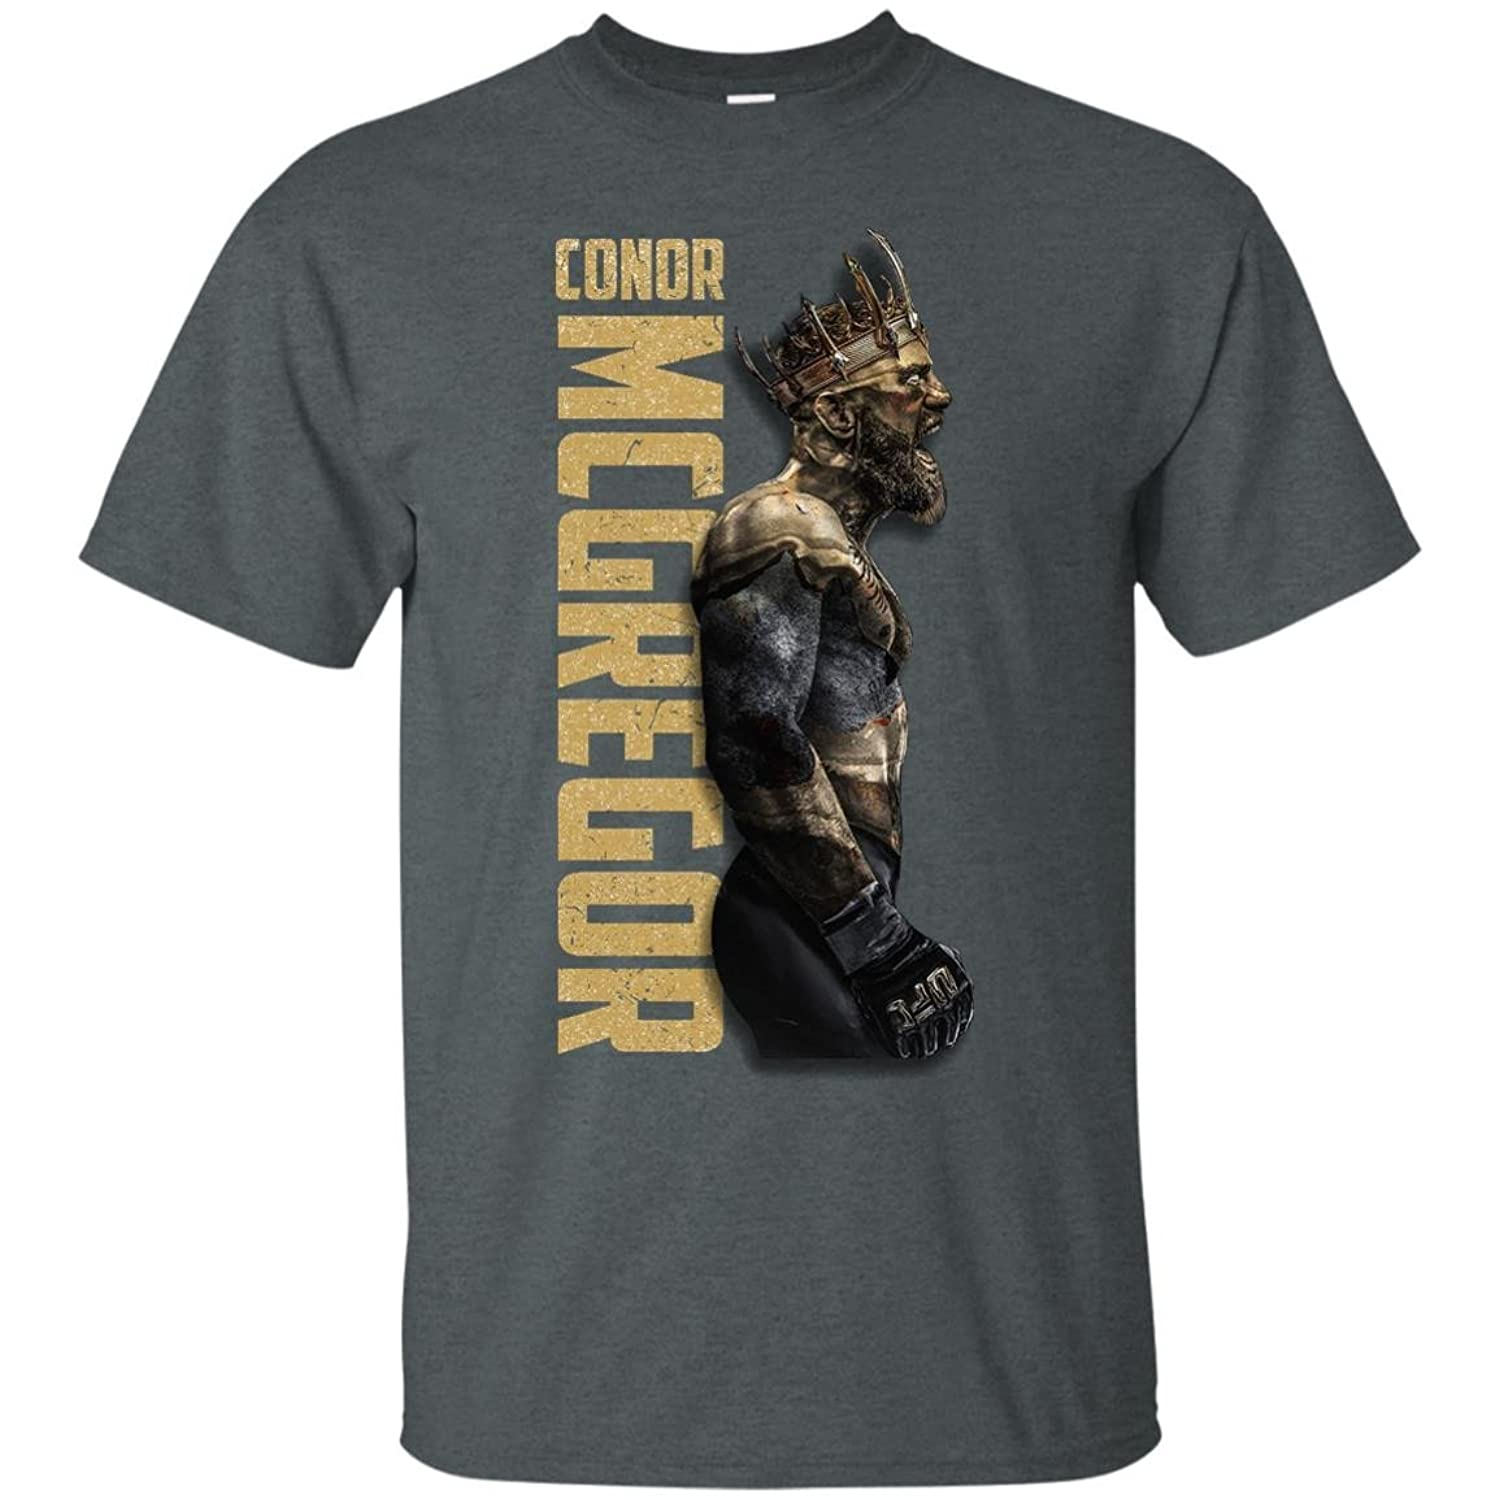 Conor Mcgregor The King Of MMA T-Shirt